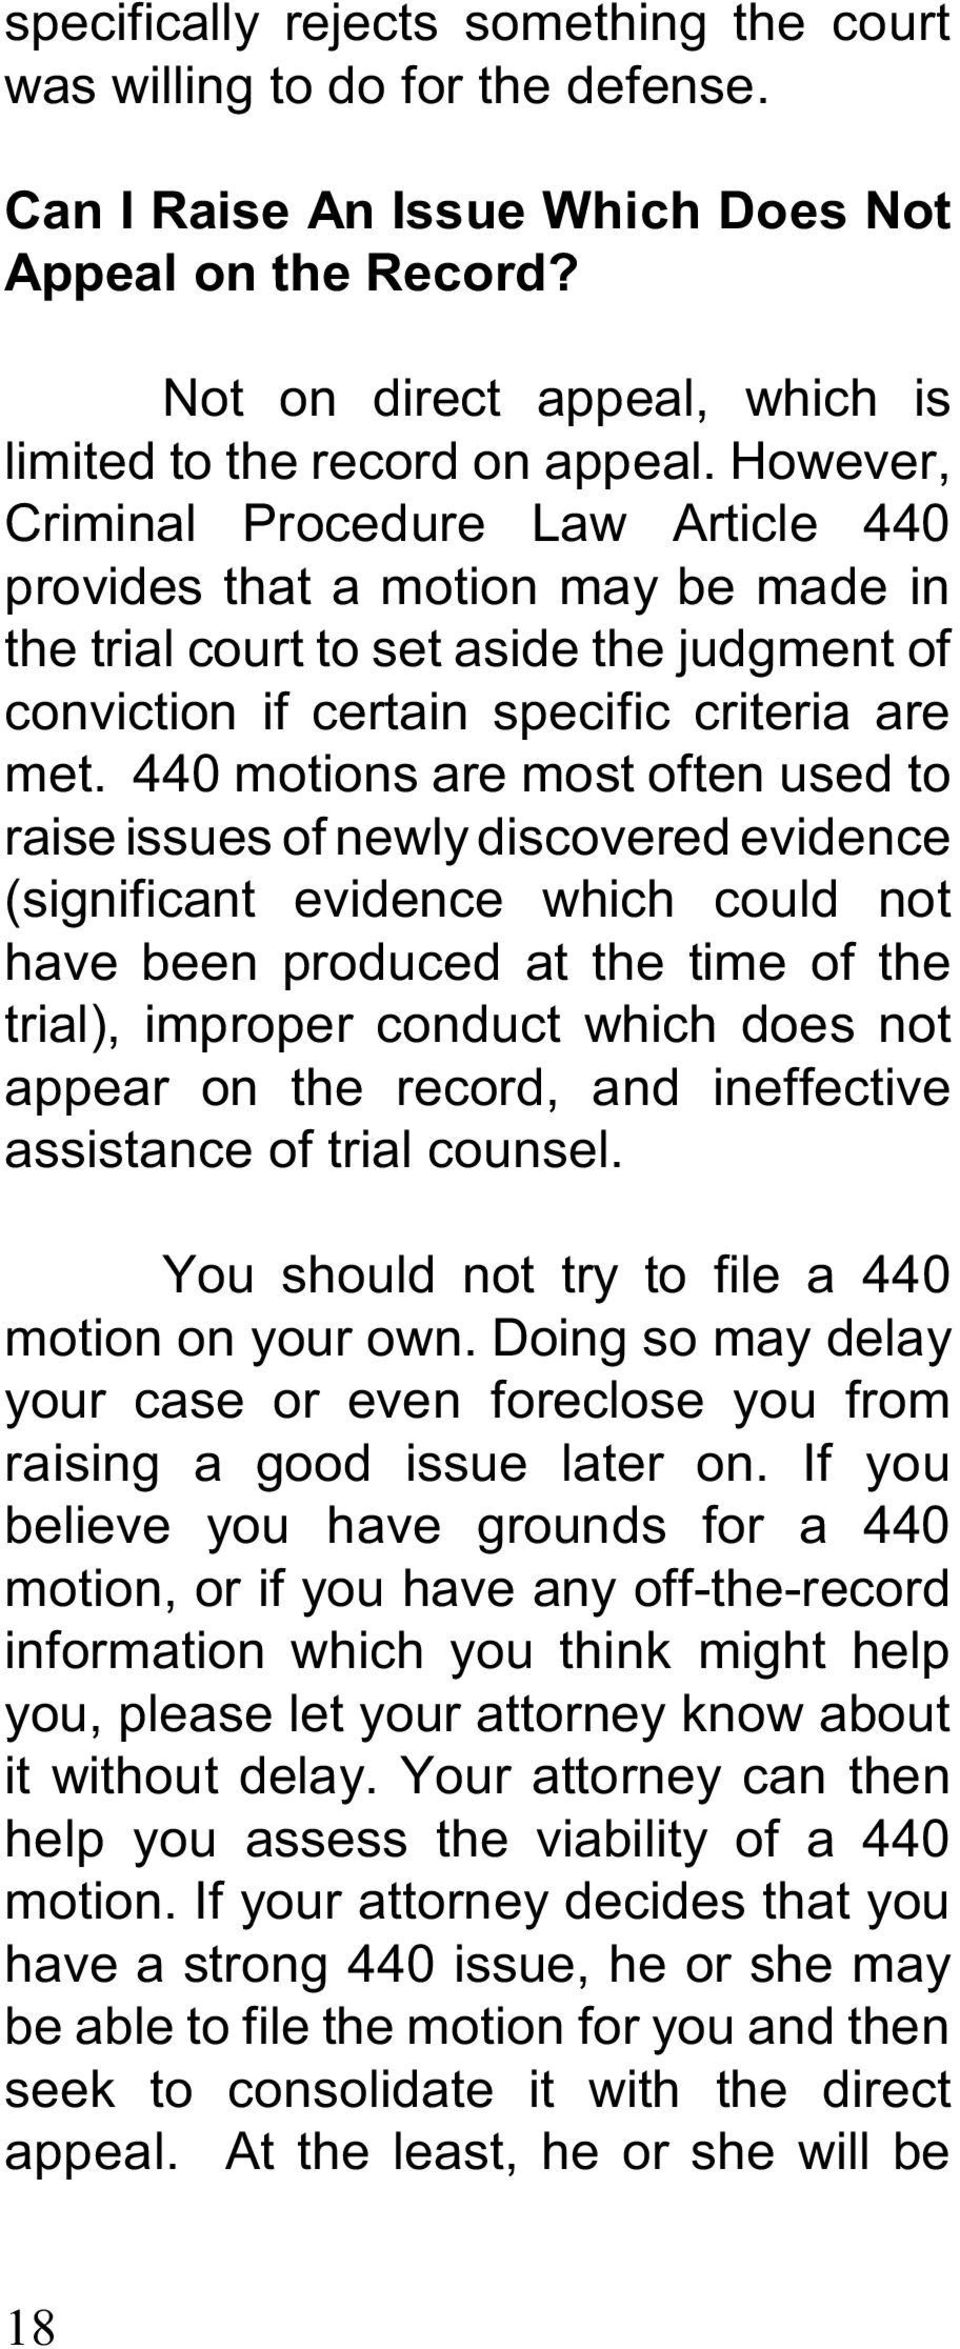 440 motions are most often used to raise issues of newly discovered evidence (significant evidence which could not have been produced at the time of the trial), improper conduct which does not appear